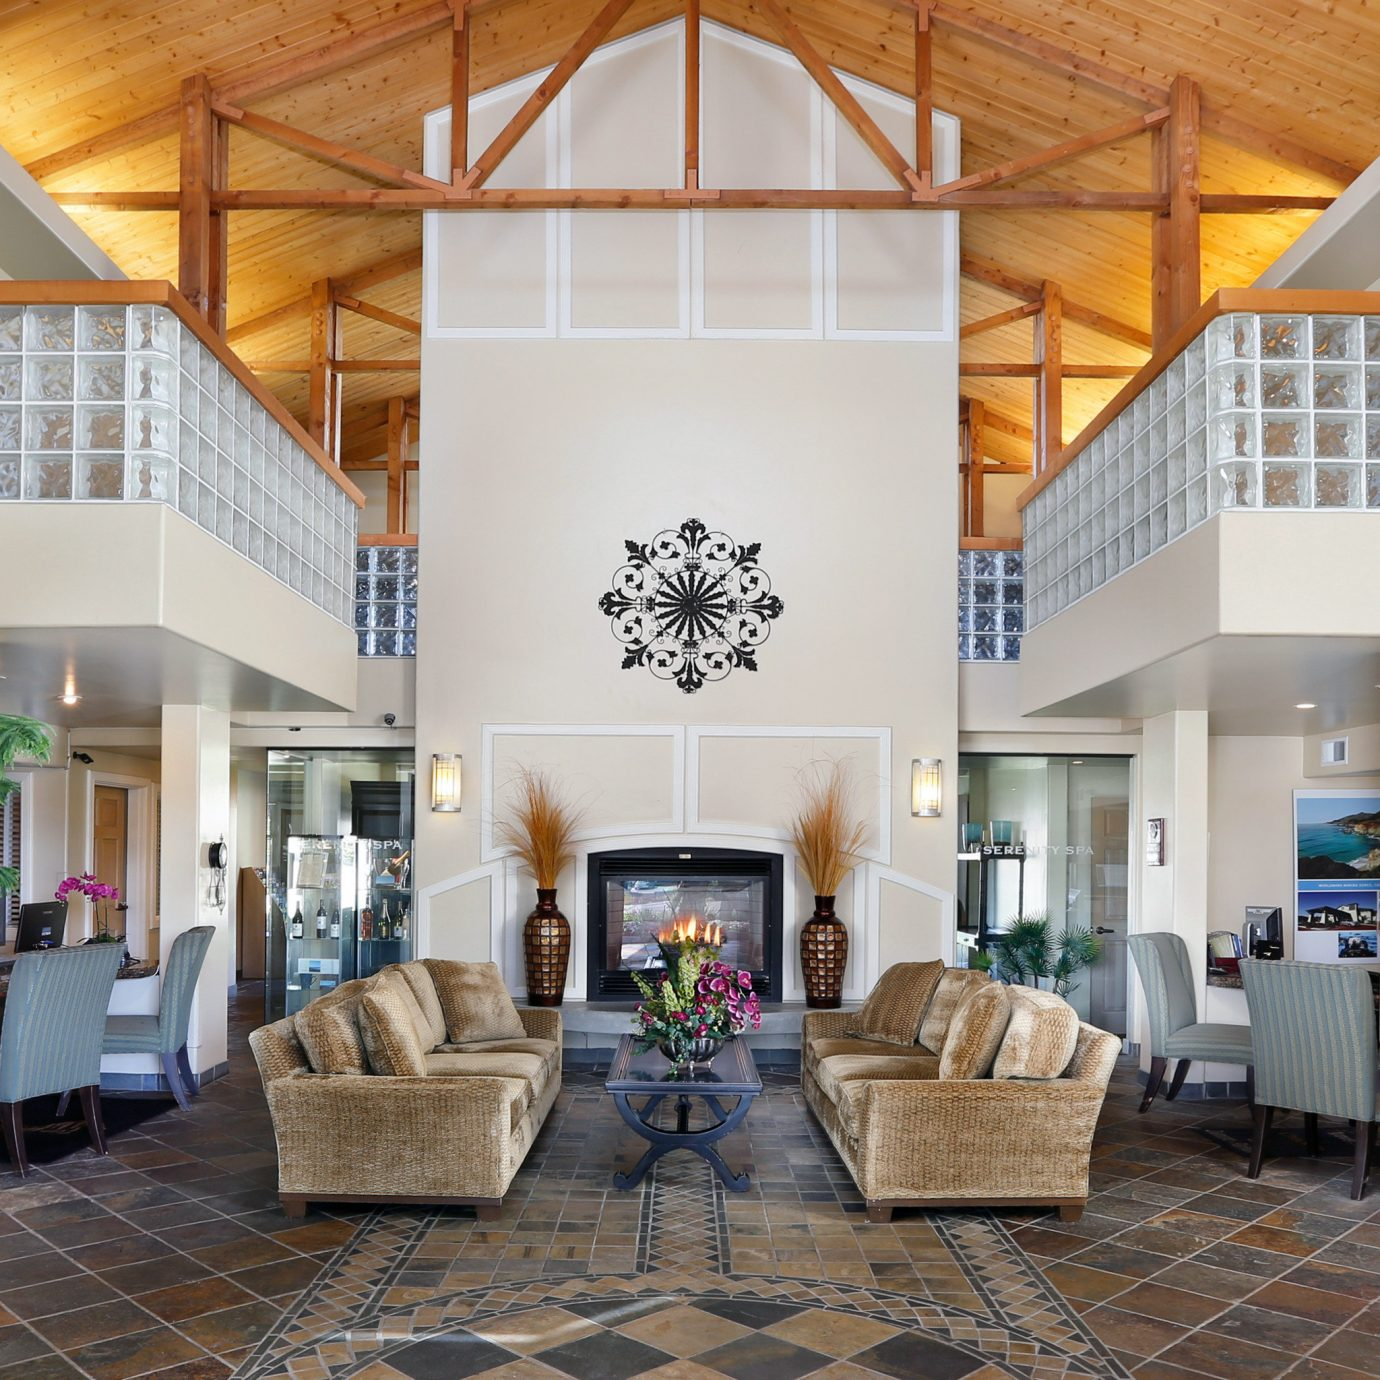 Classic Lounge Modern property living room home Lobby porch outdoor structure farmhouse stone